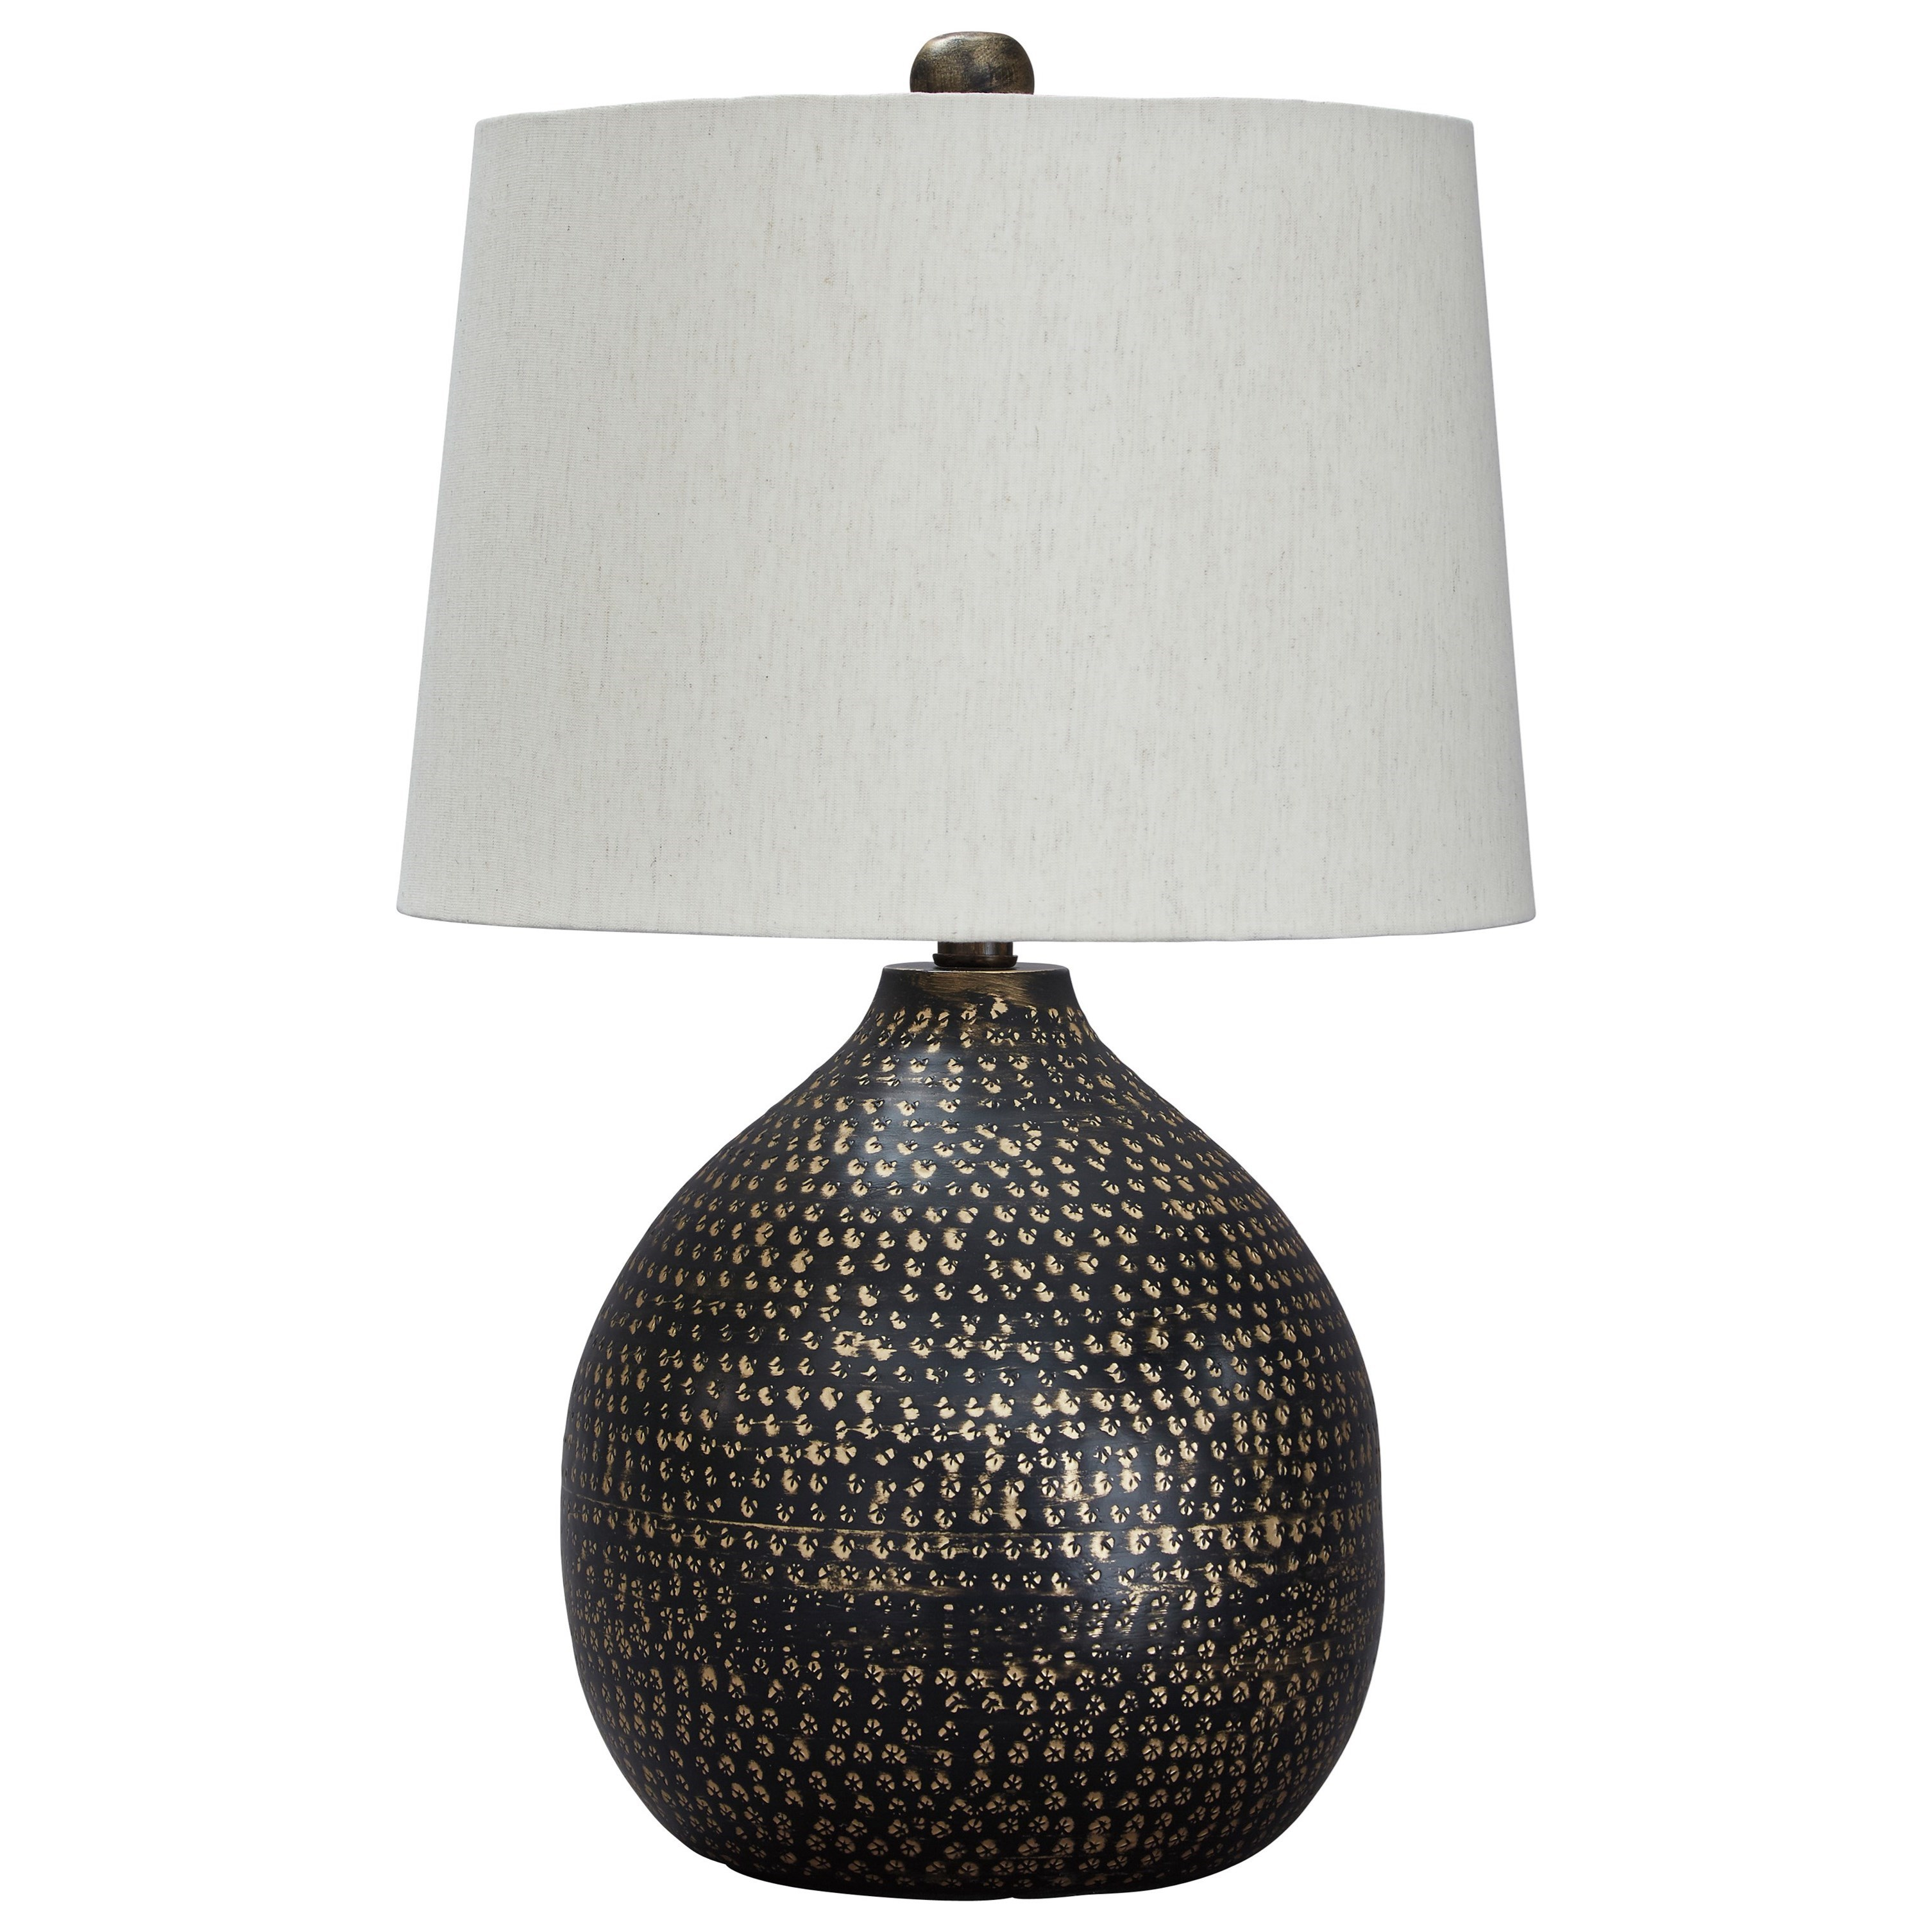 Lamps - Contemporary Maire Black/Gold Finish Metal Table Lamp by Signature Design by Ashley at Northeast Factory Direct